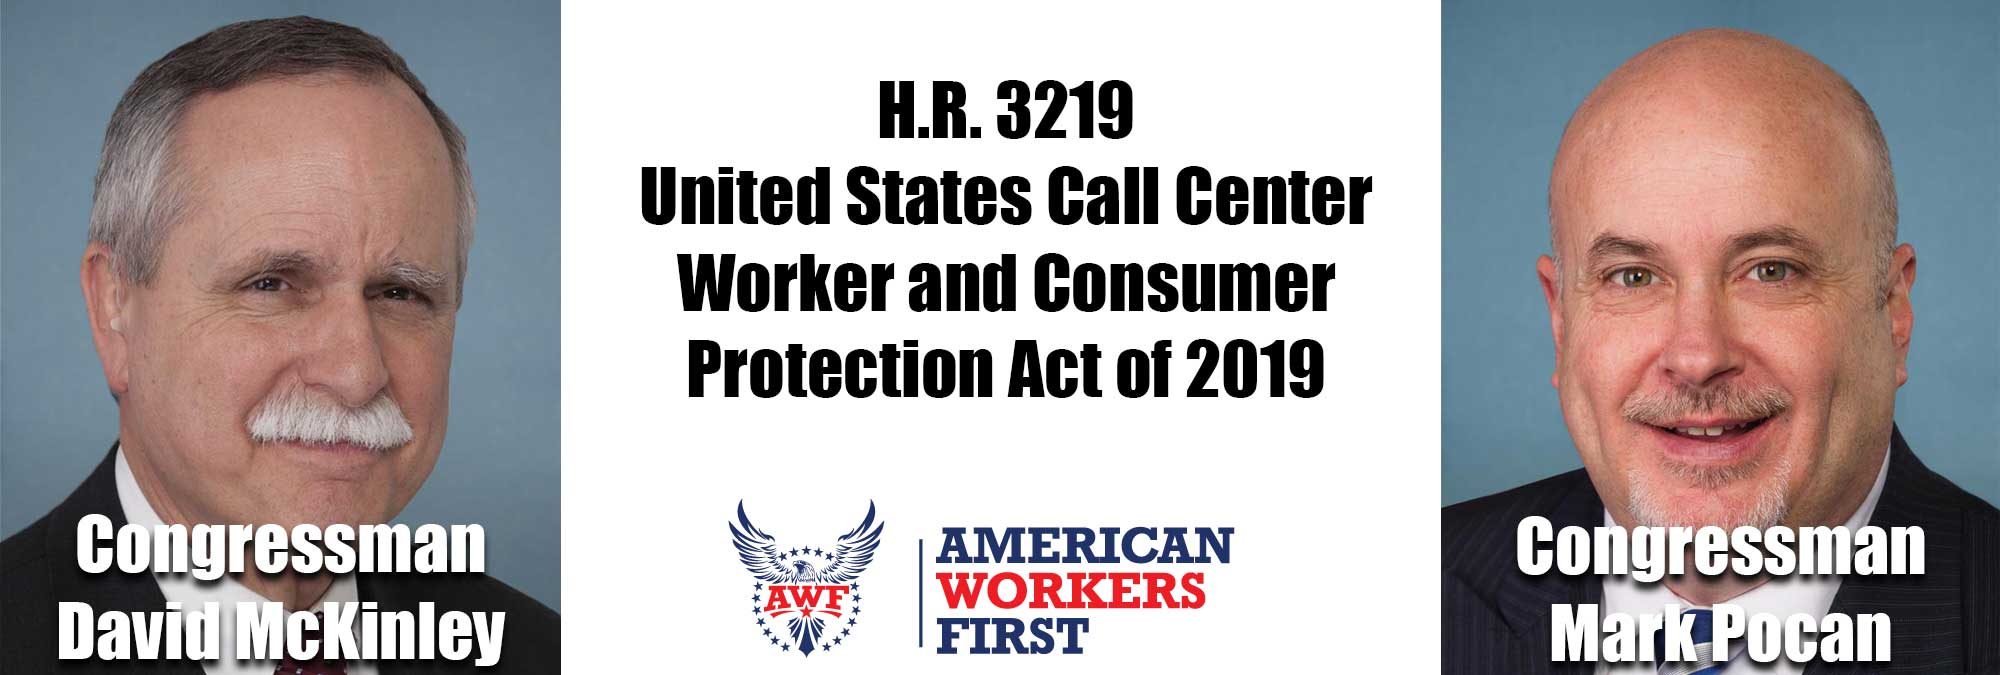 Pocan McKinley HR 3219 US Call Center and Consumer Protection Act of 2019